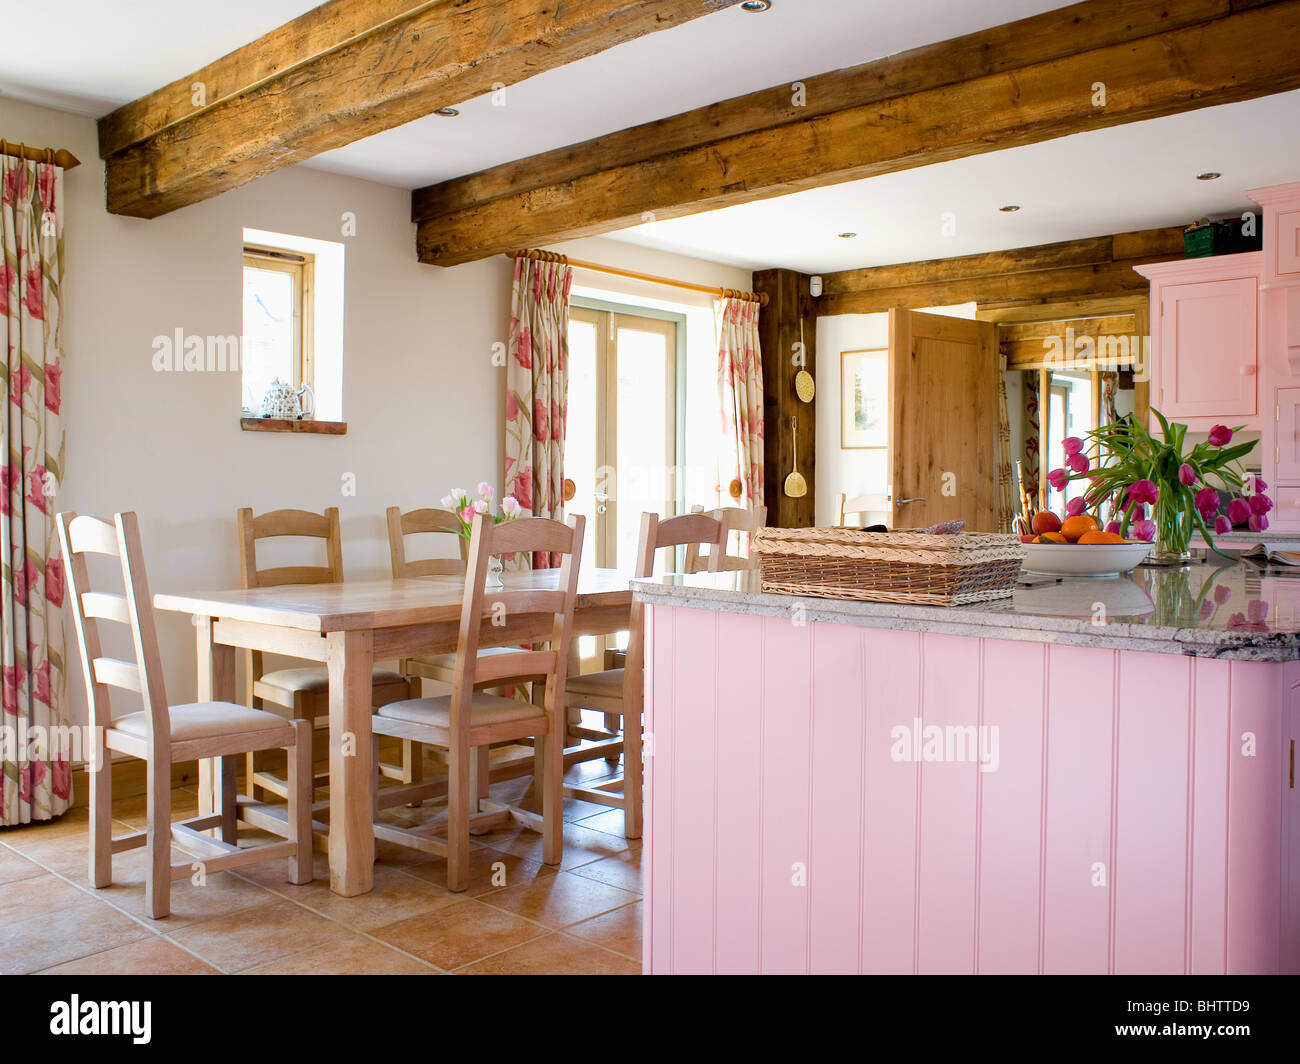 Interiors Traditional Kitchens Dining Rooms Imágenes De Stock ...